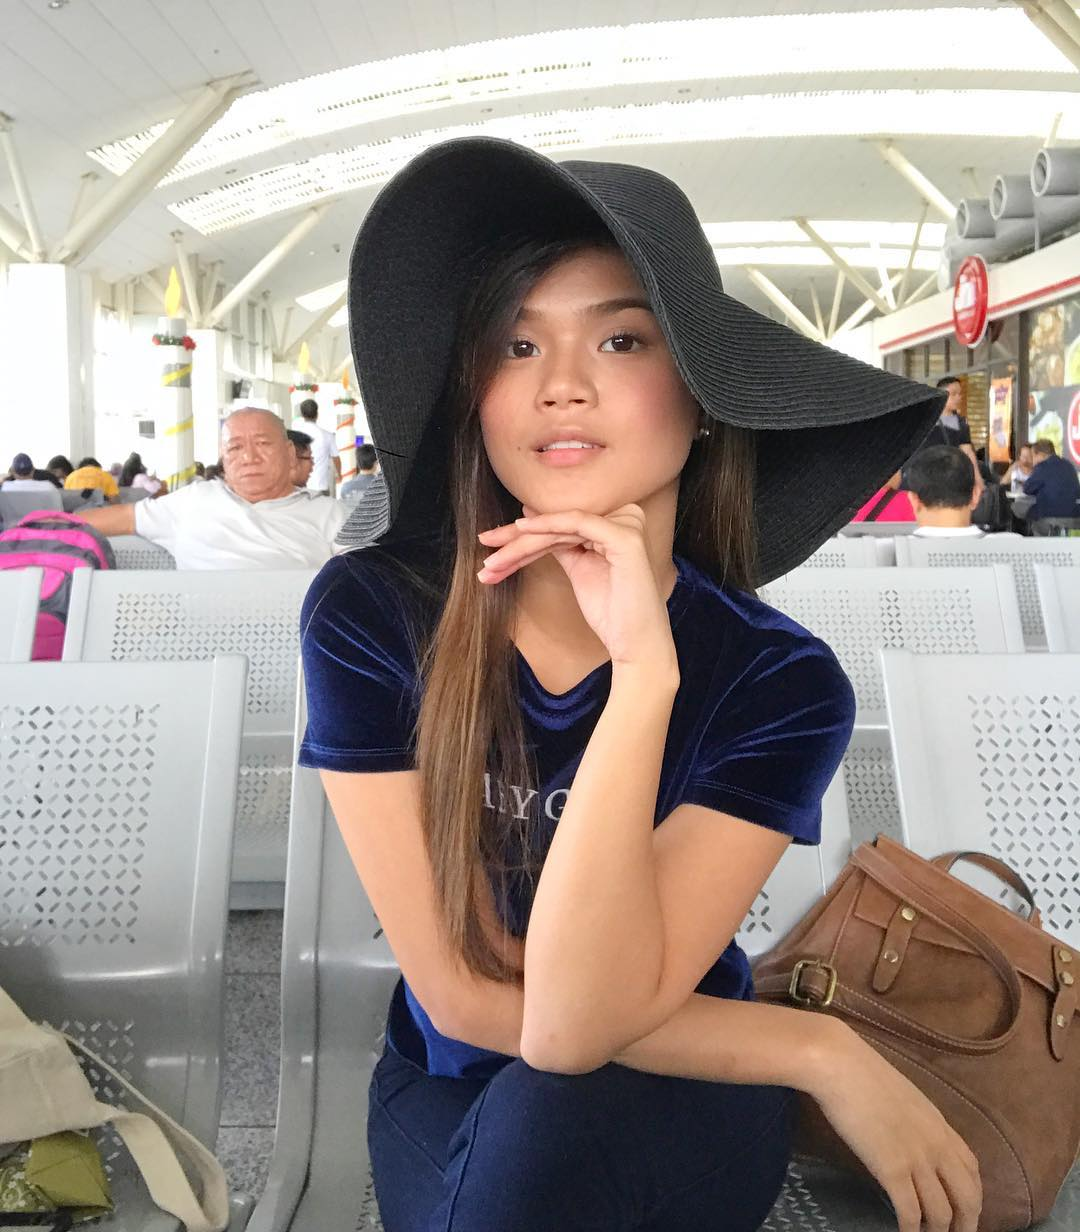 IN PHOTOS: Meet the rumored ladylove of Iñigo Pascual